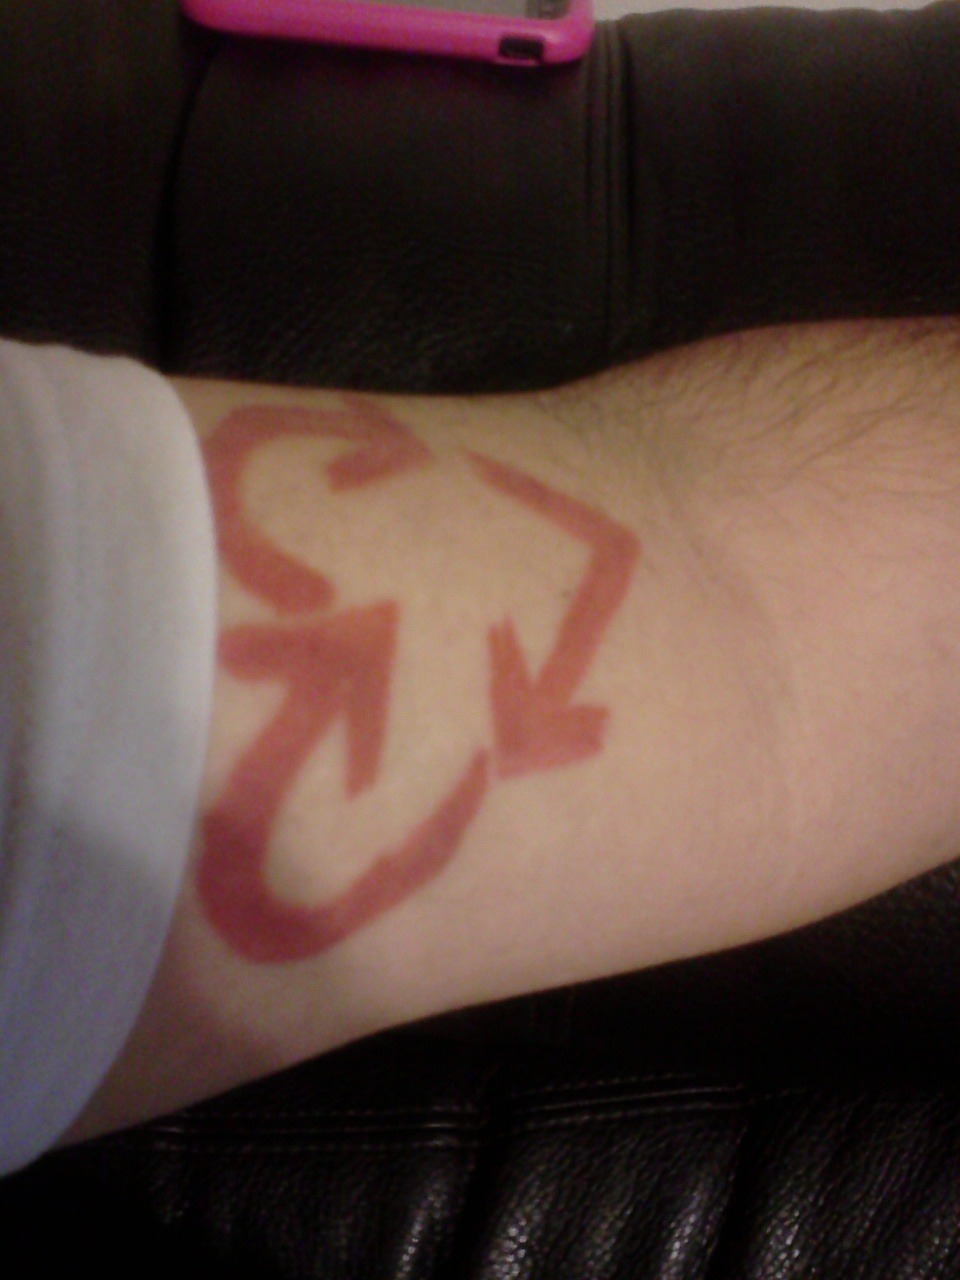 My stick to your guns 'hope division' symbol tattoo